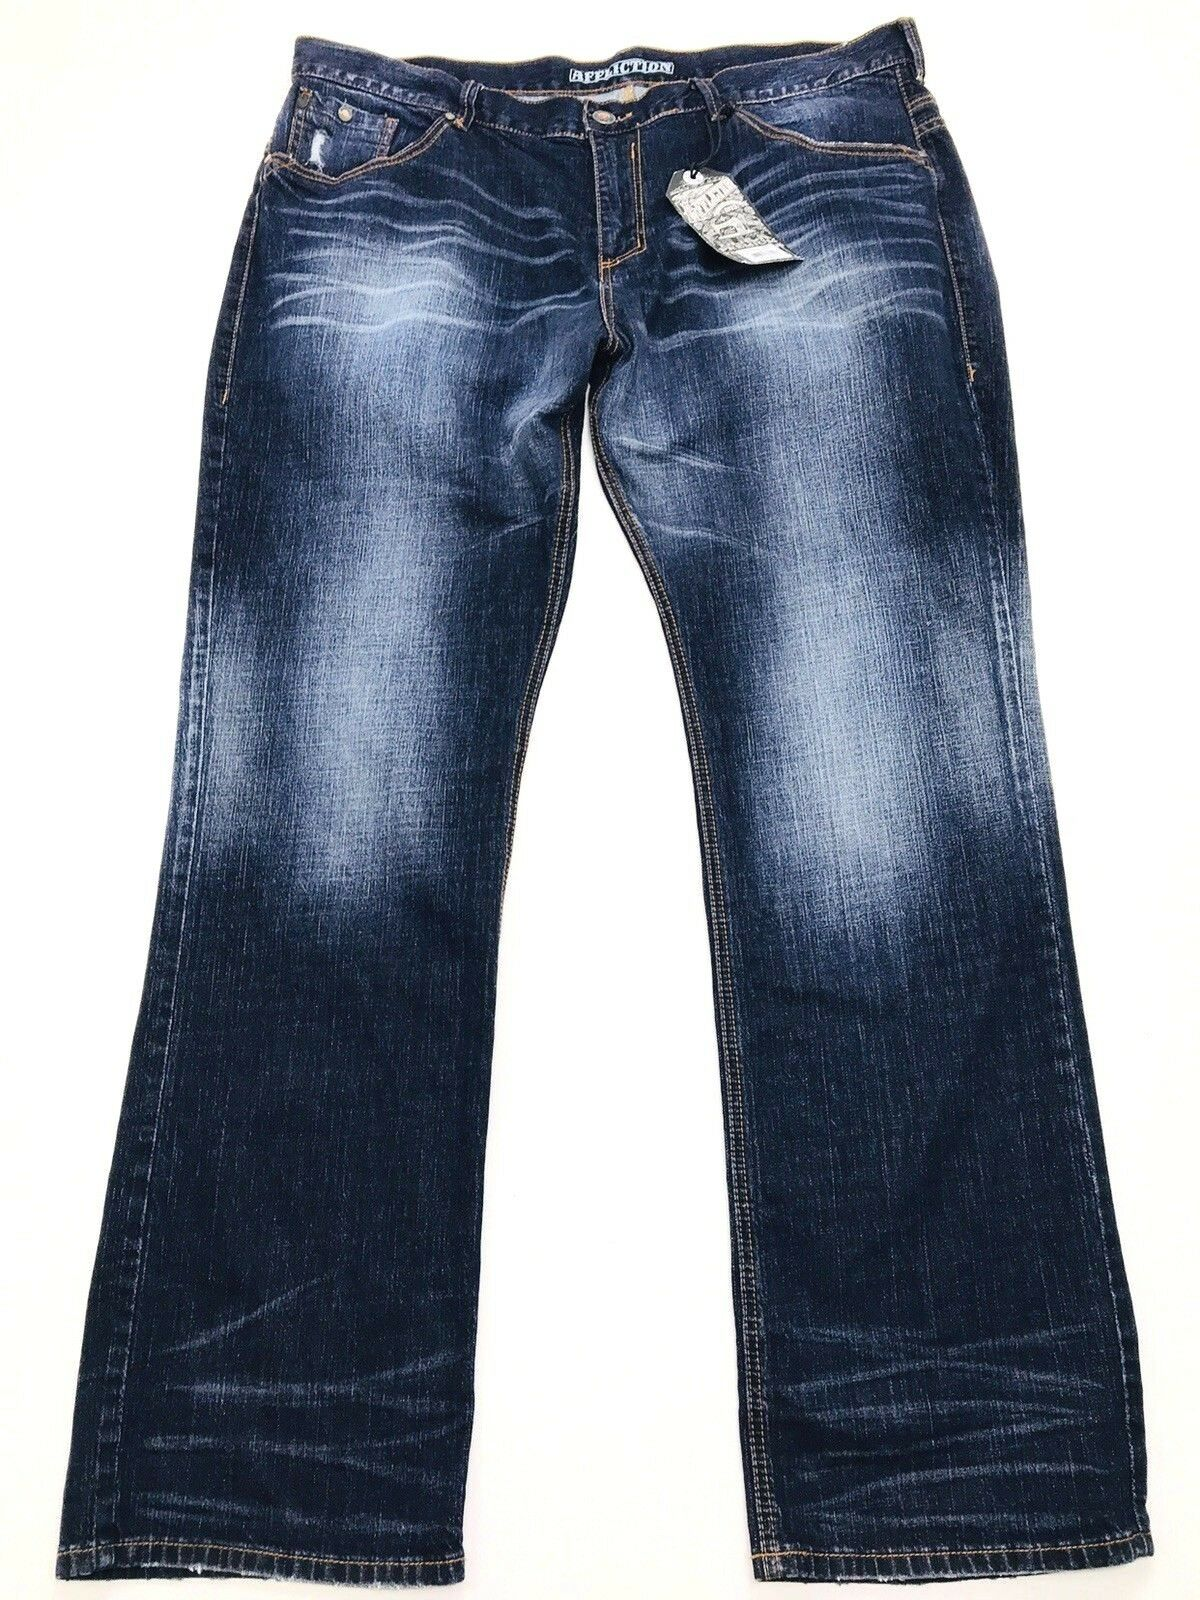 Affliction Mens 42x36 Ace Ascended Tacoma Standard Series Distressed Jeans (424)